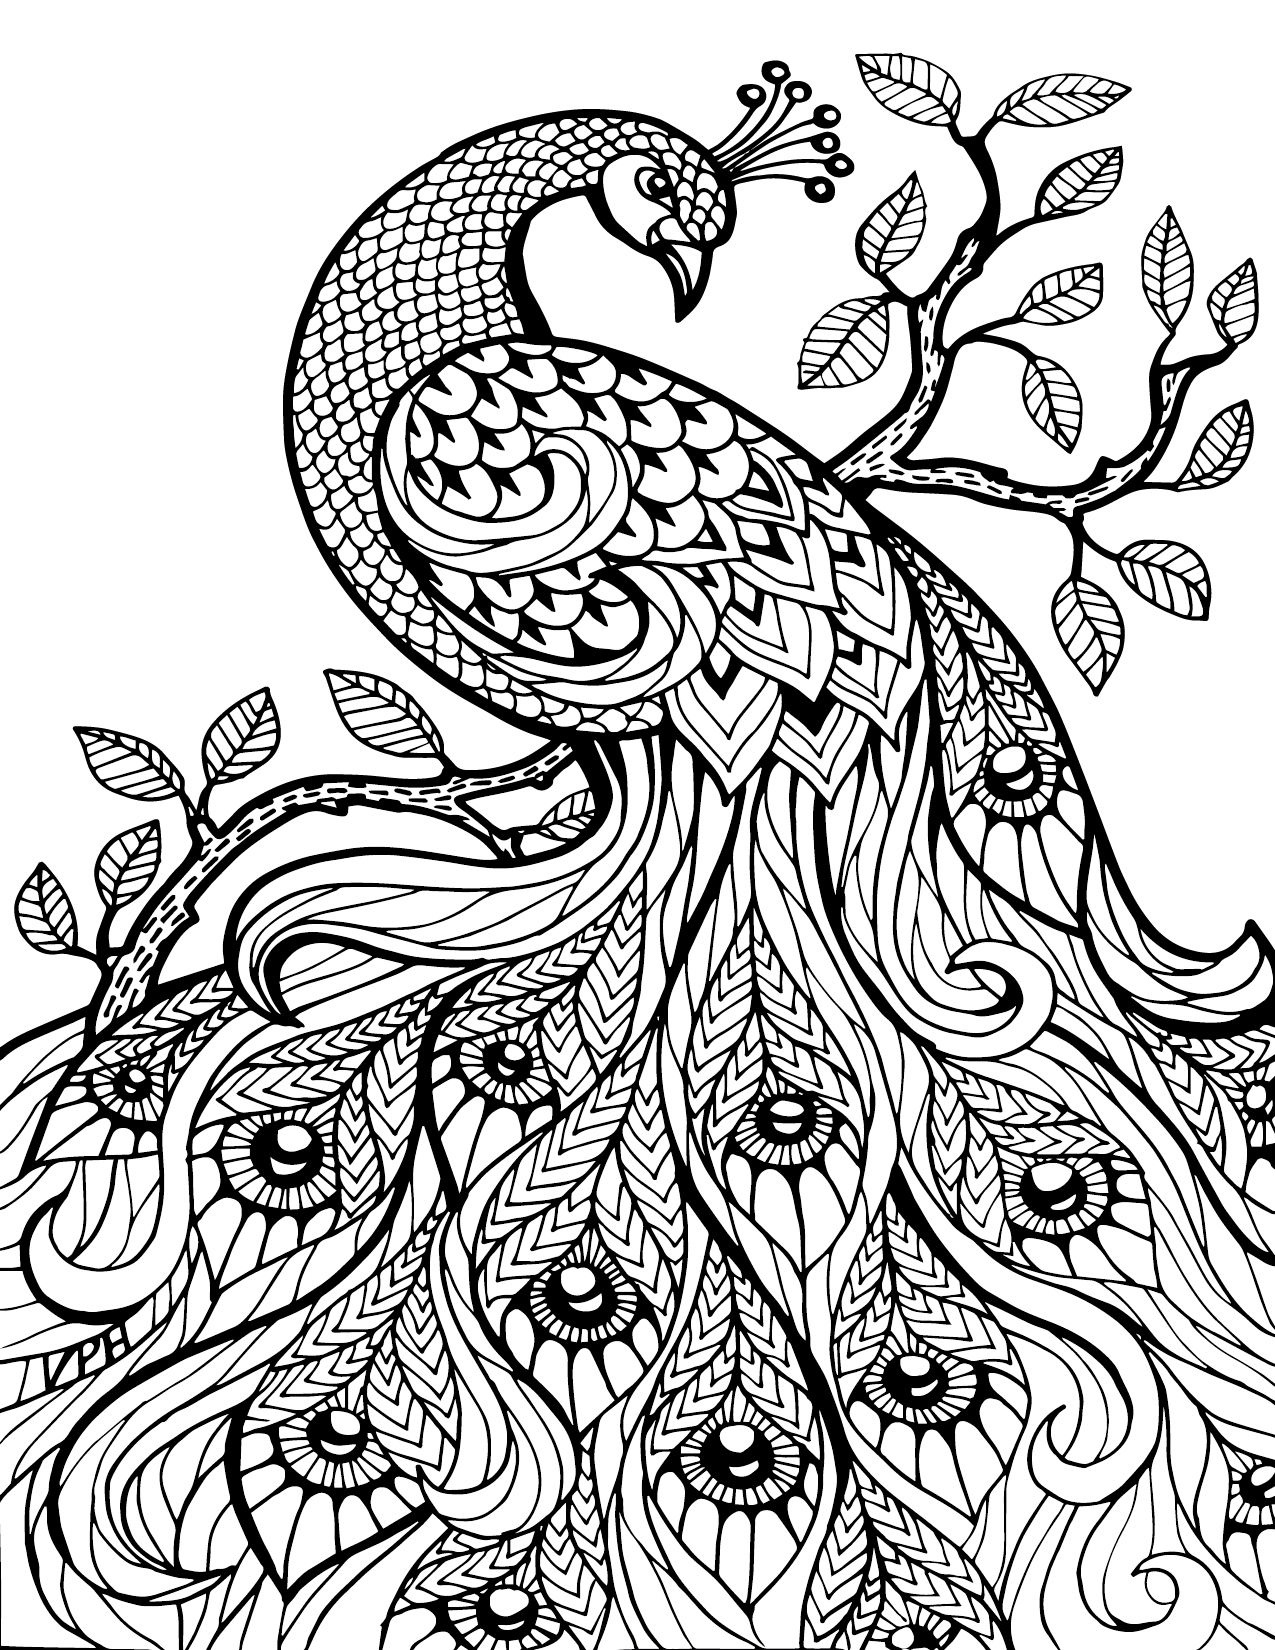 Free Printable Coloring Pages For Adults Only Image 36 Art - Free Printable Coloring Cards For Adults